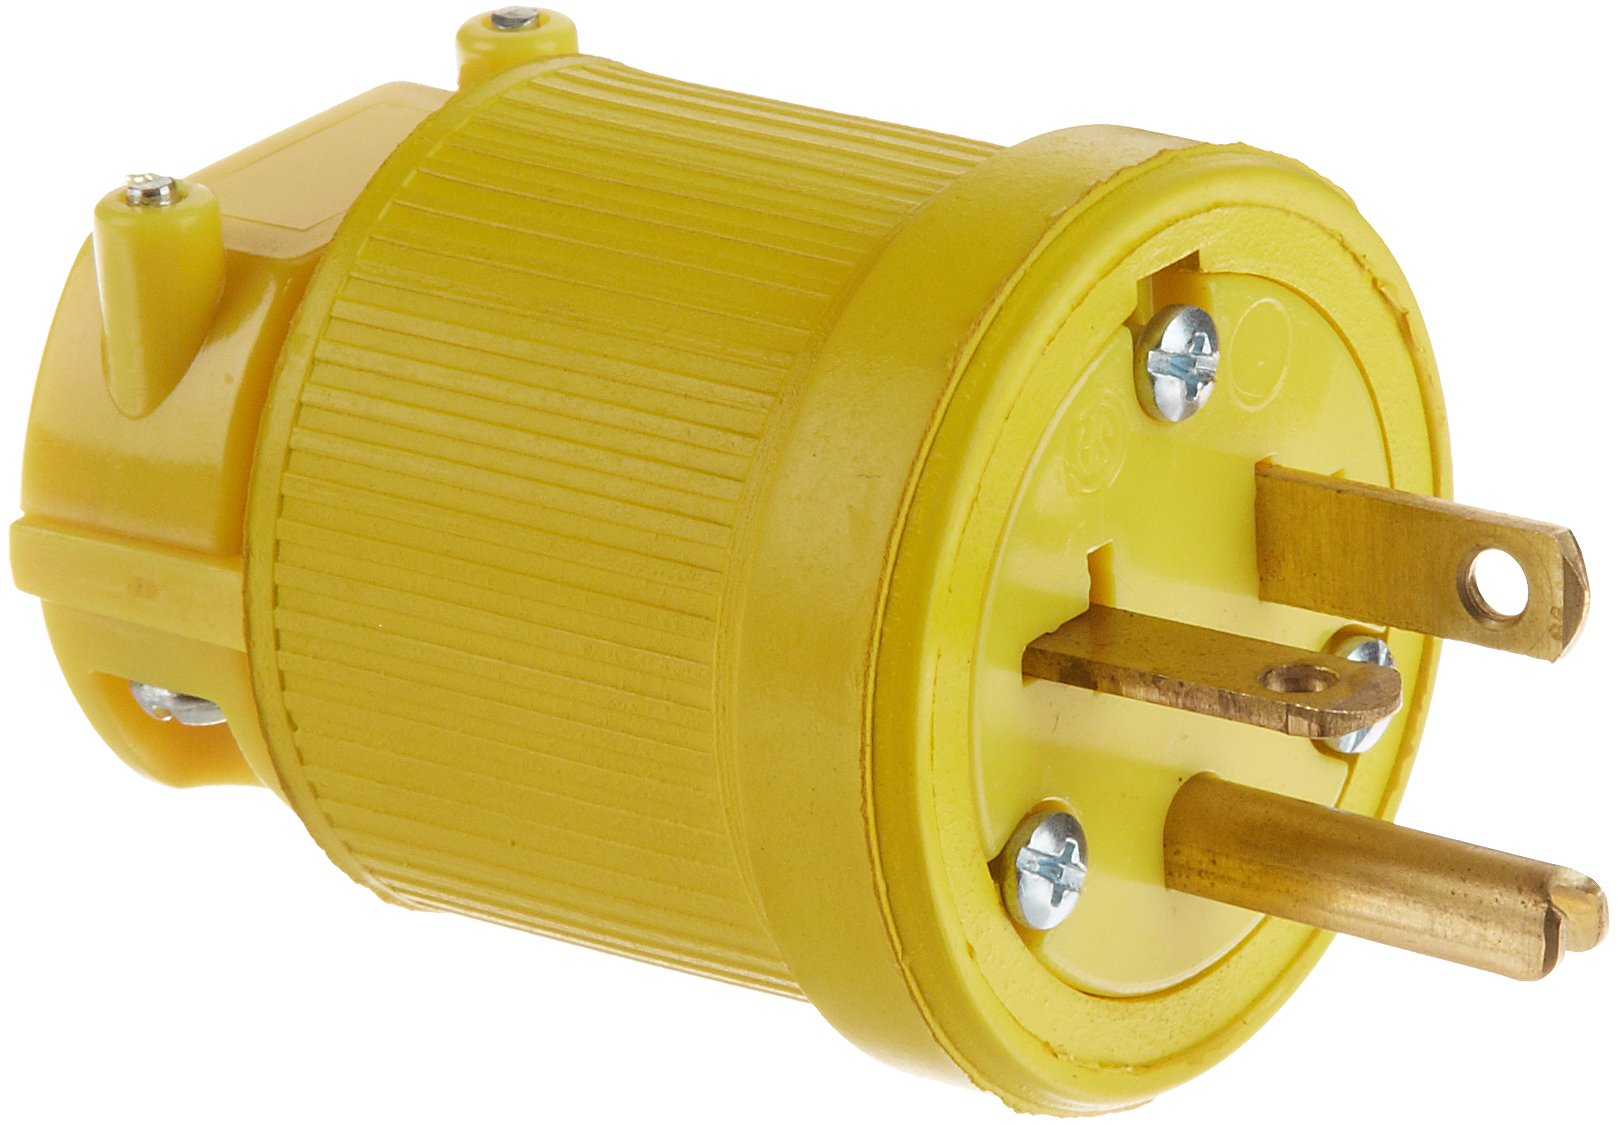 KH Industries P620DF Rubber/Polycarbonate Rewireable Flip Seal Straight Blade Plug, 2 Pole/3 Wire, 20 amps, 250V AC, Yellow by KH Industries